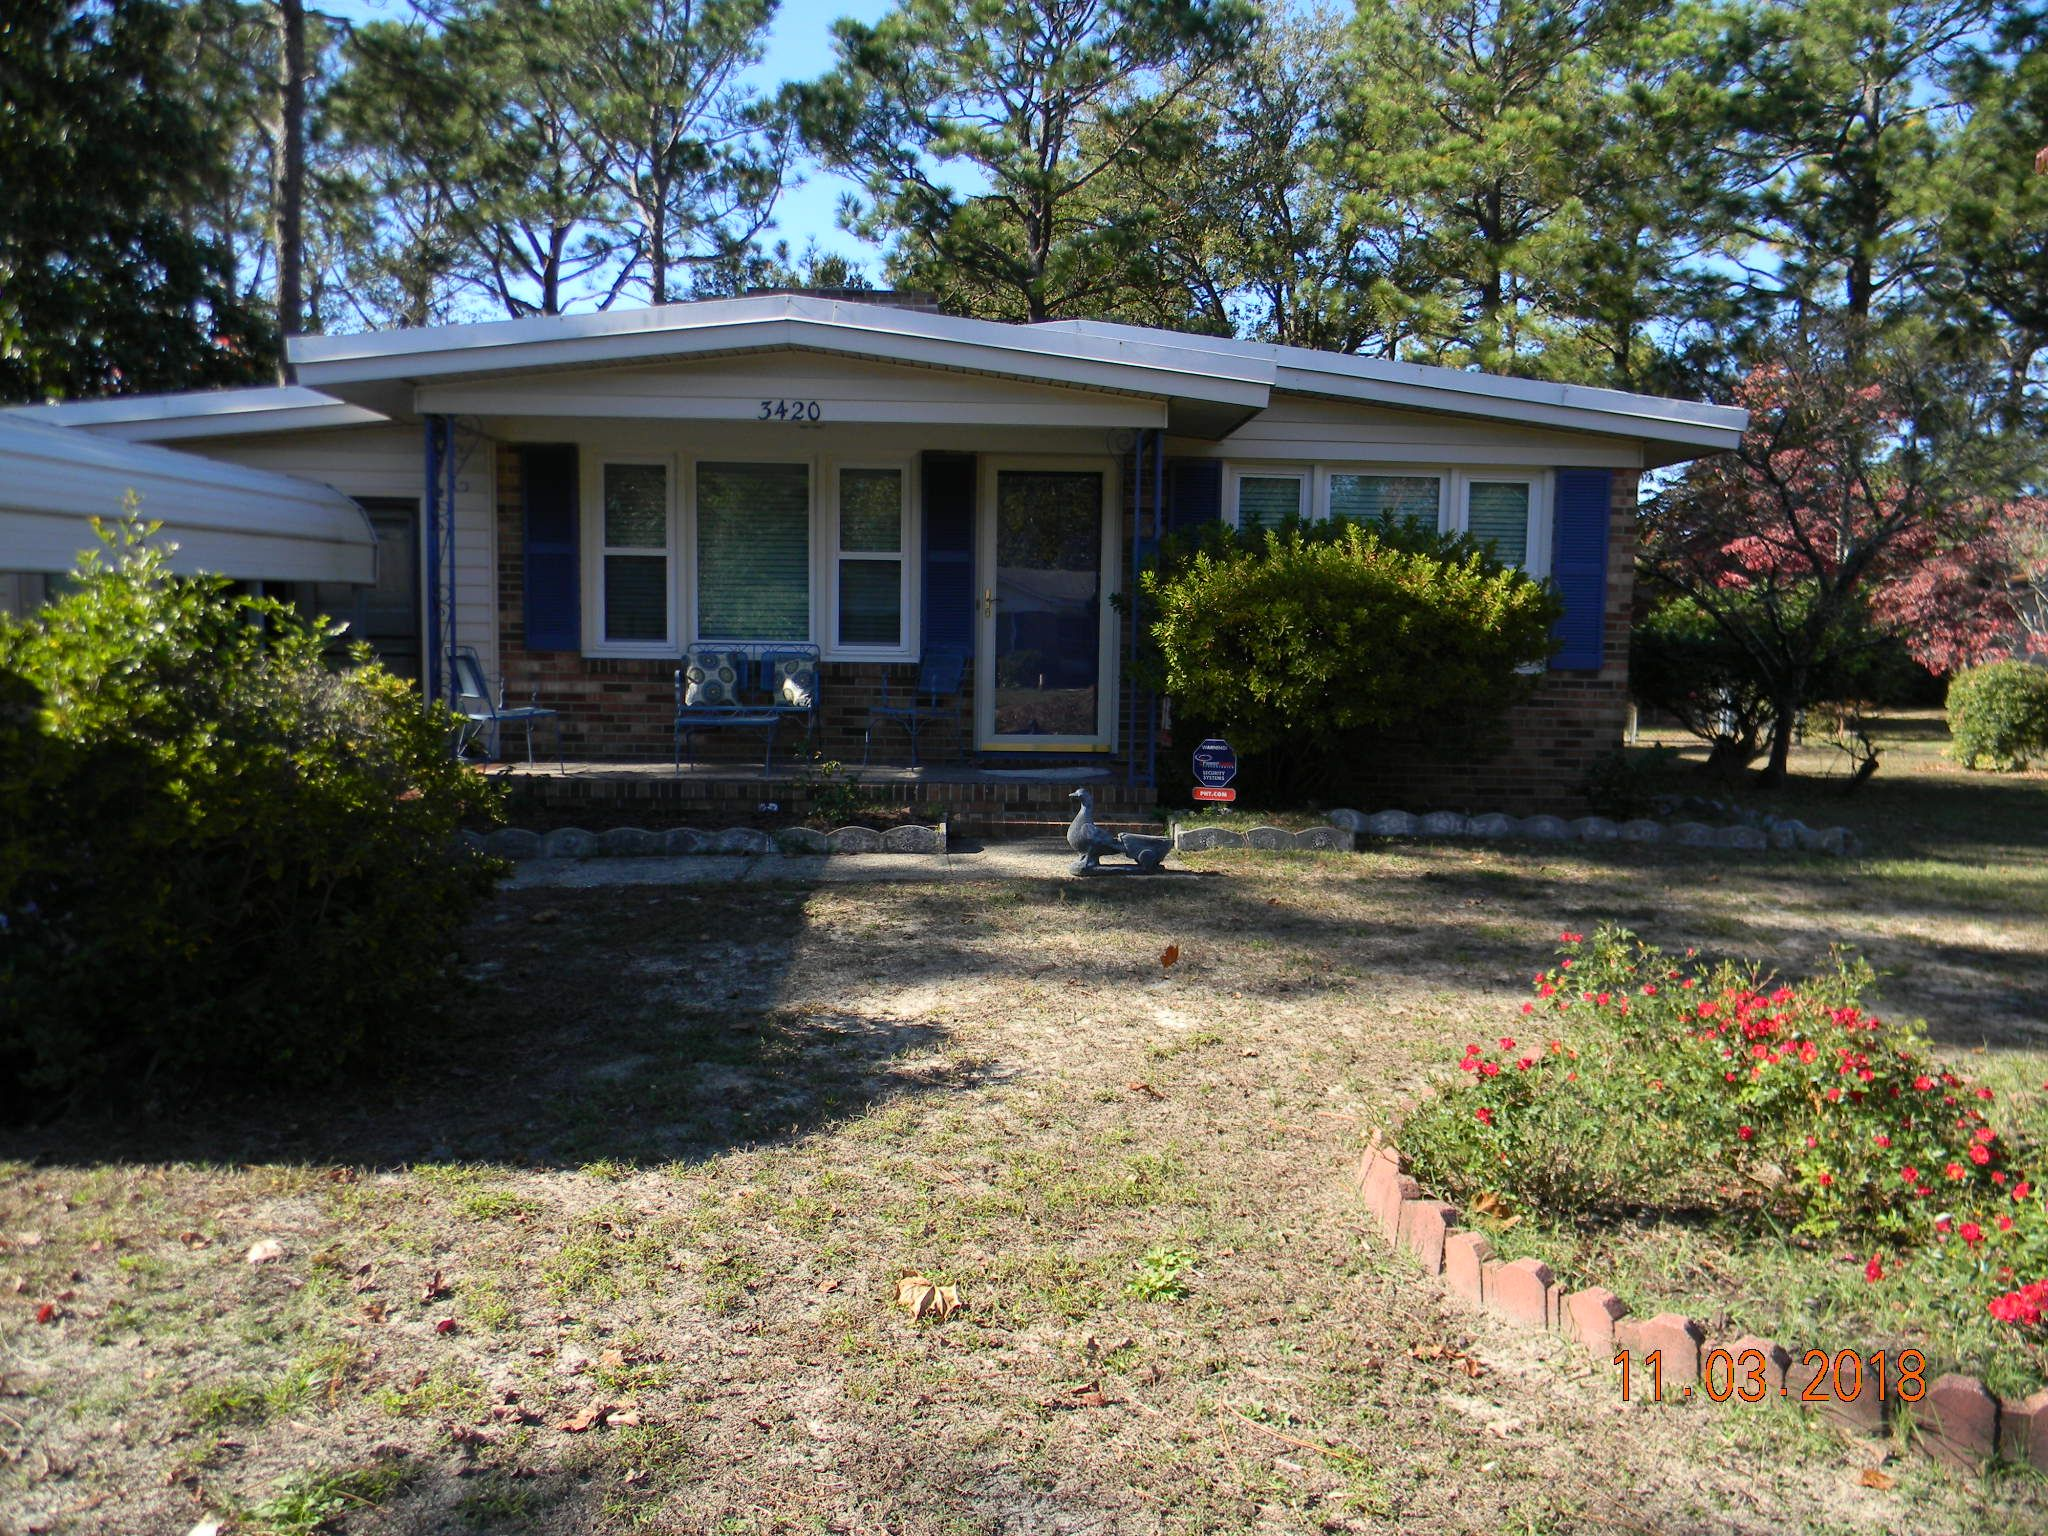 3420 Madison Ave, Fayetteville, NC 28304 - 3 Bed, 2 Bath Single-Family Home  - 22 Photos | Trulia